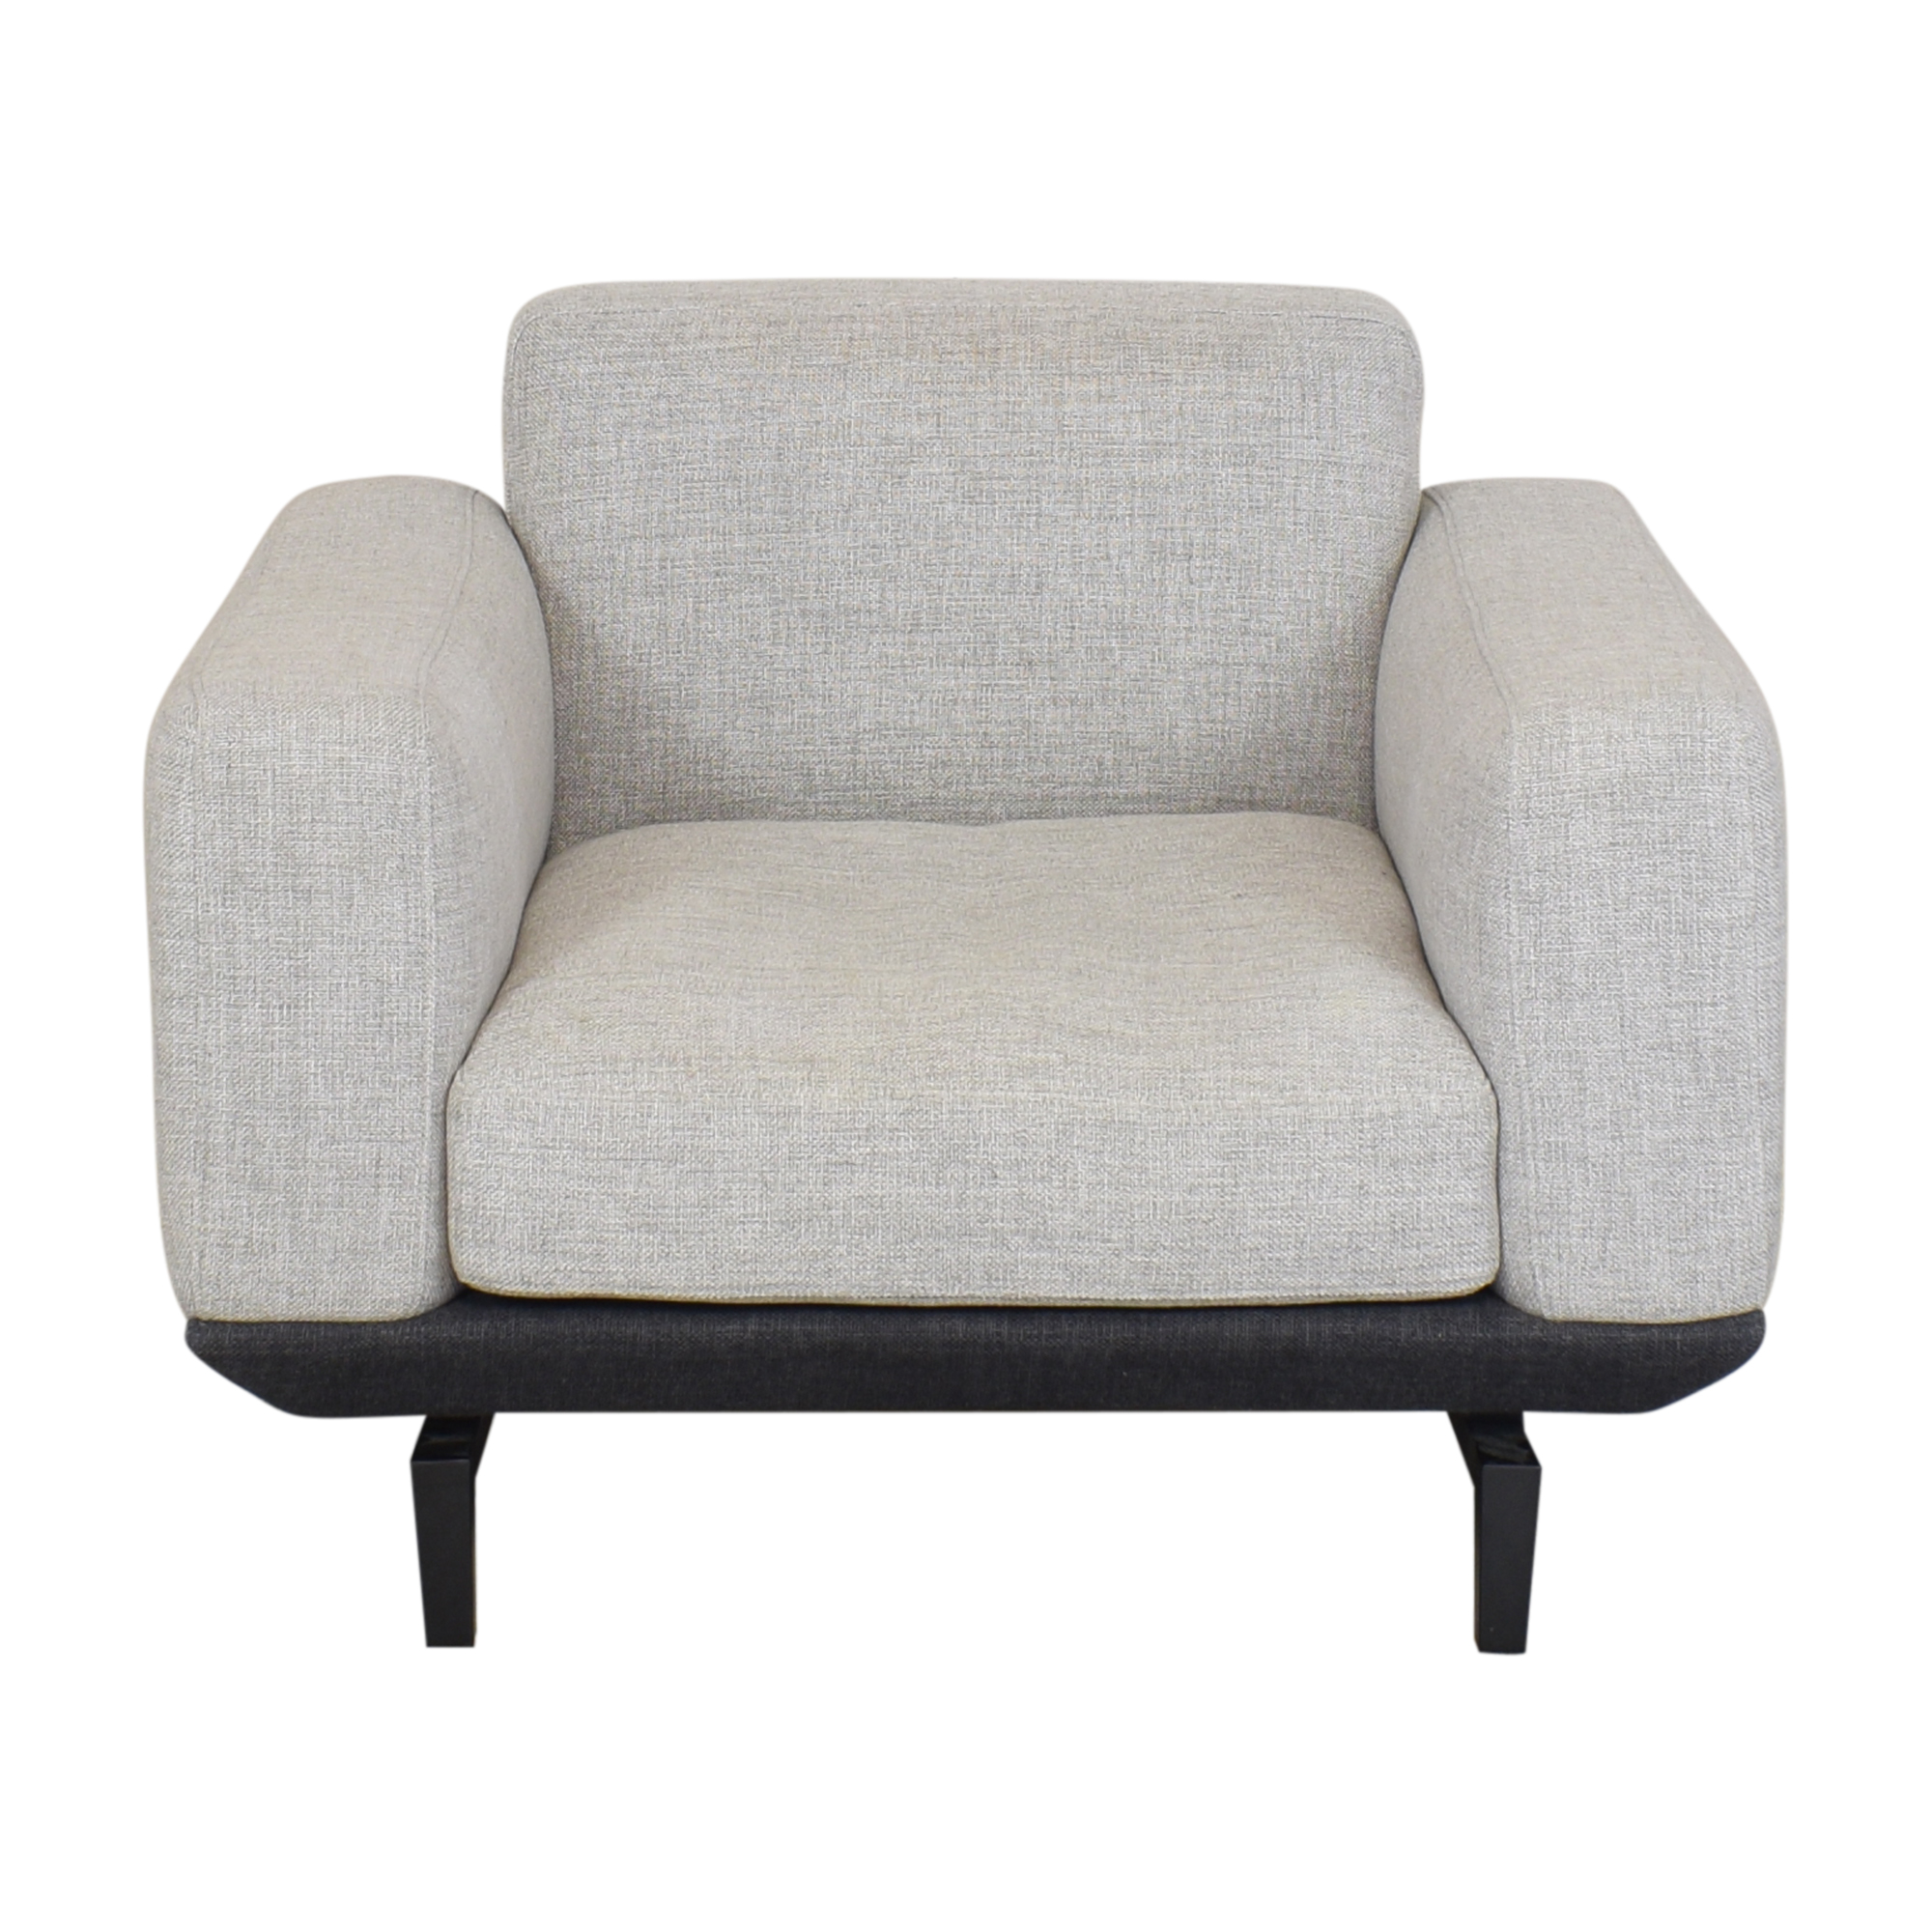 AllModern AllModern Puff Puff Club Chair for sale